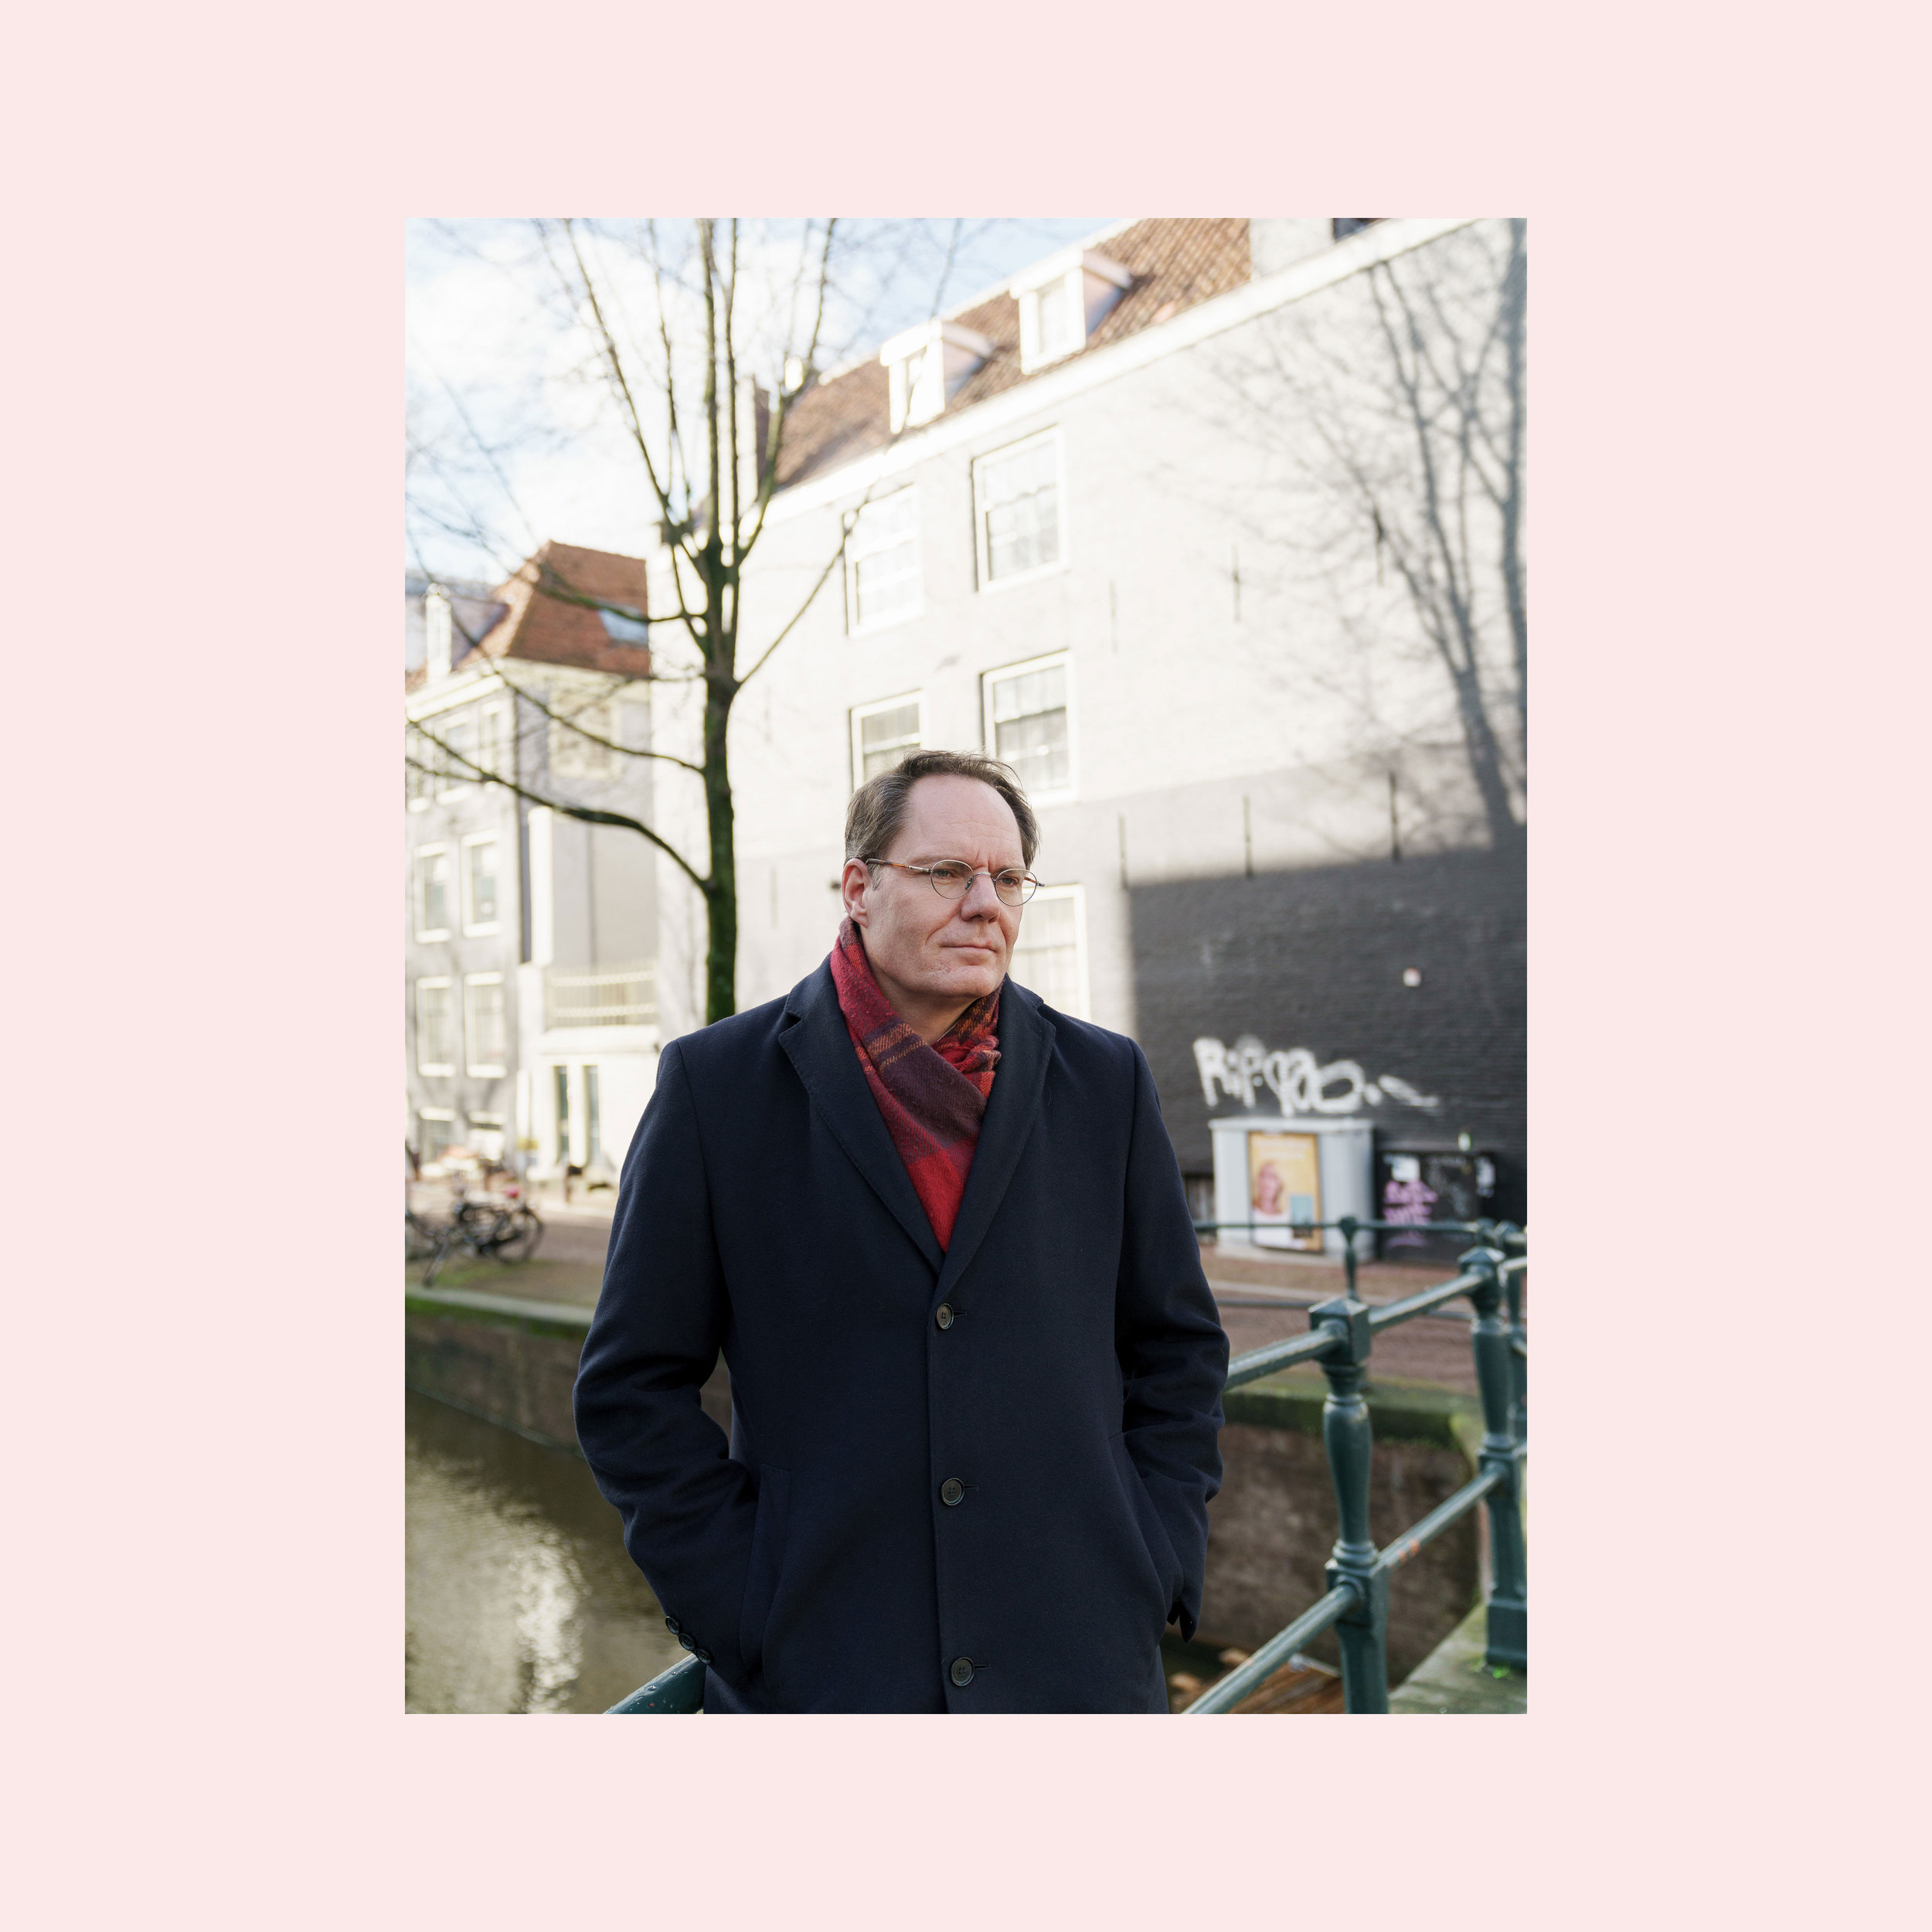 Amsterdam Deputy Mayor, Udo Kock for The New York Times